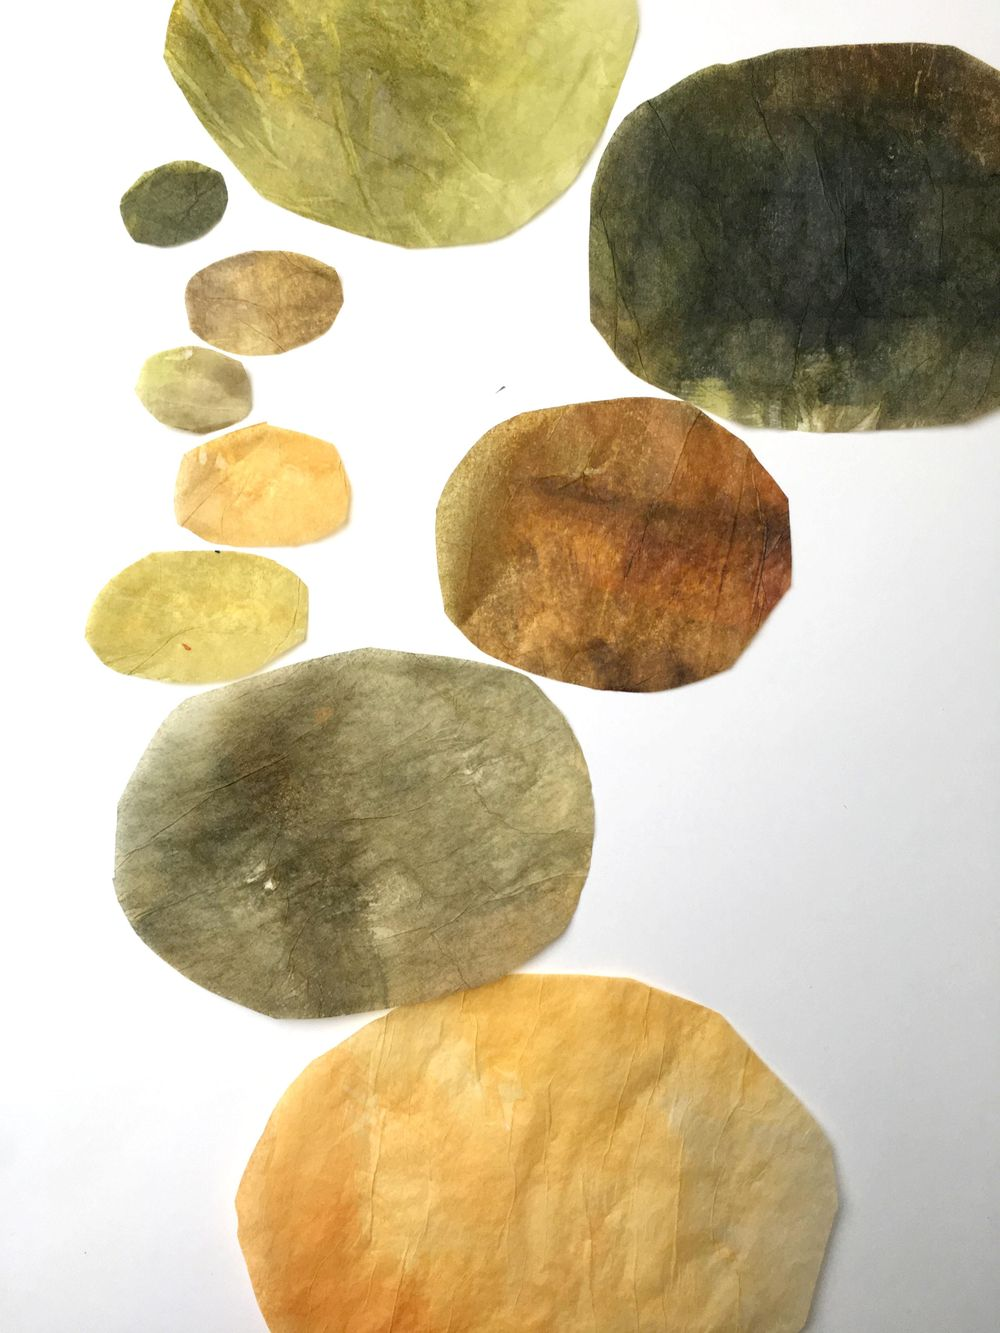 Painted stones - image 4 - student project